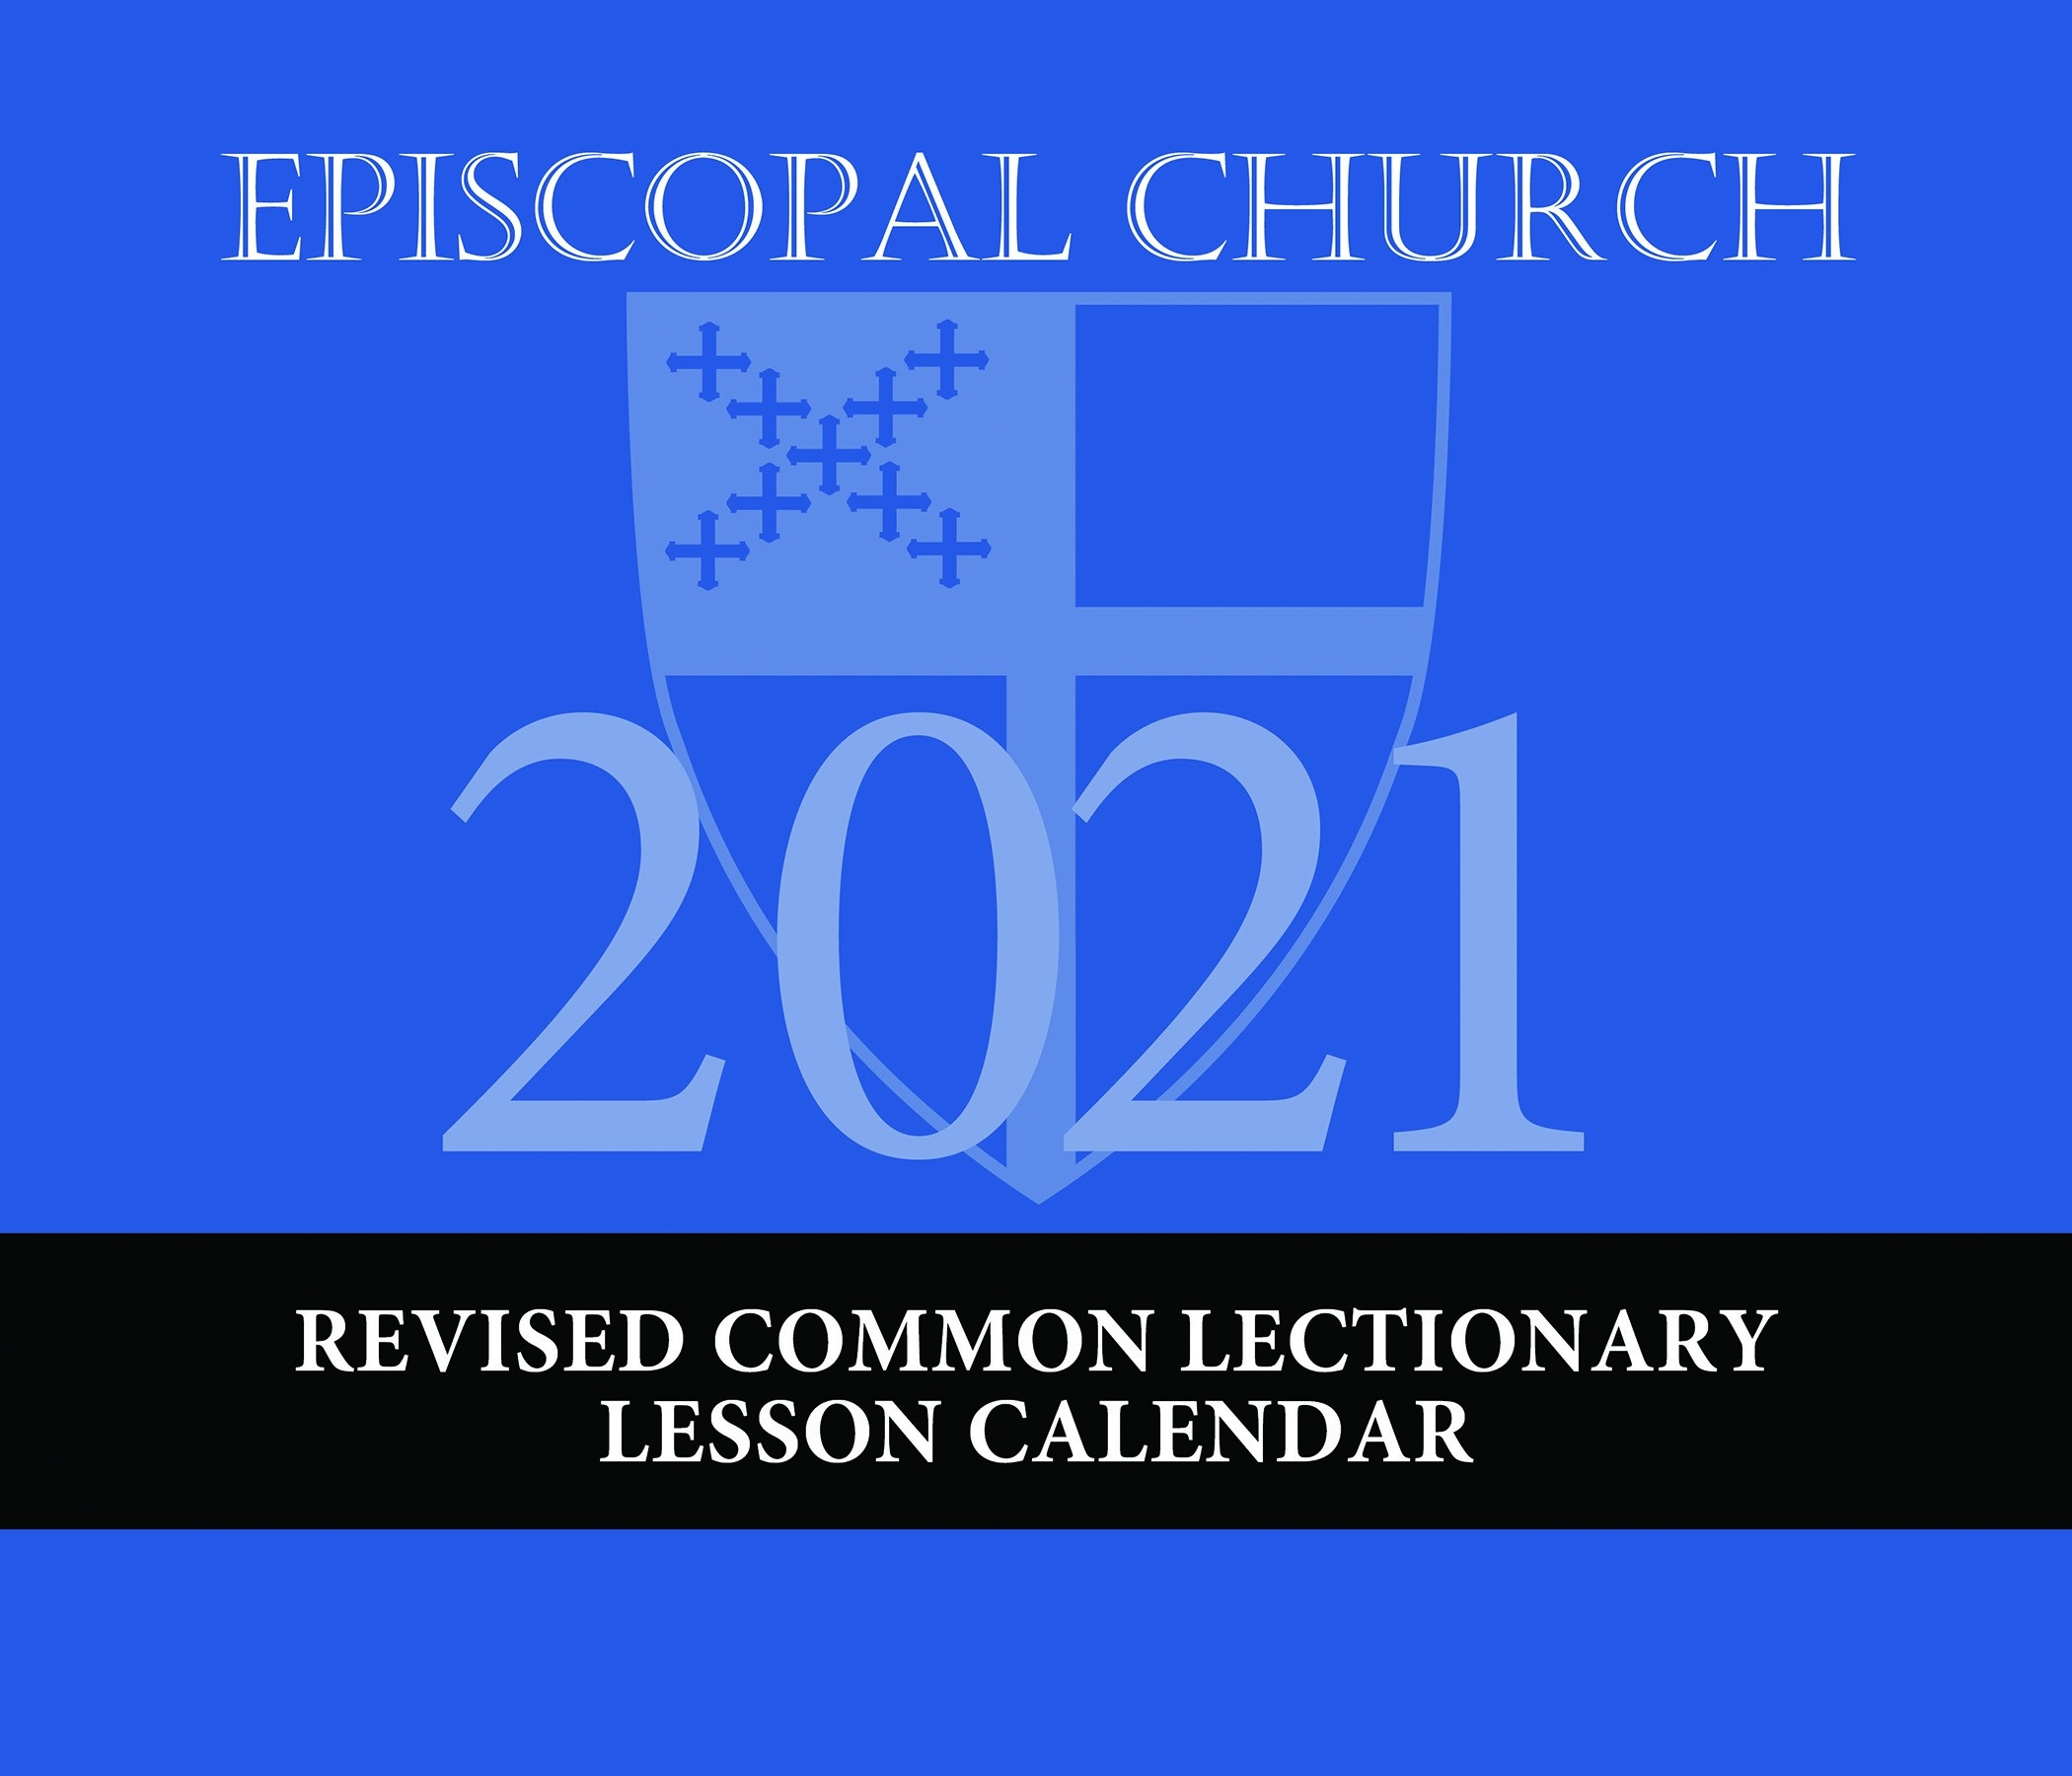 Episcopal Church Lesson Calendar Rcl 2021  Revised Common Lectionary Calendar